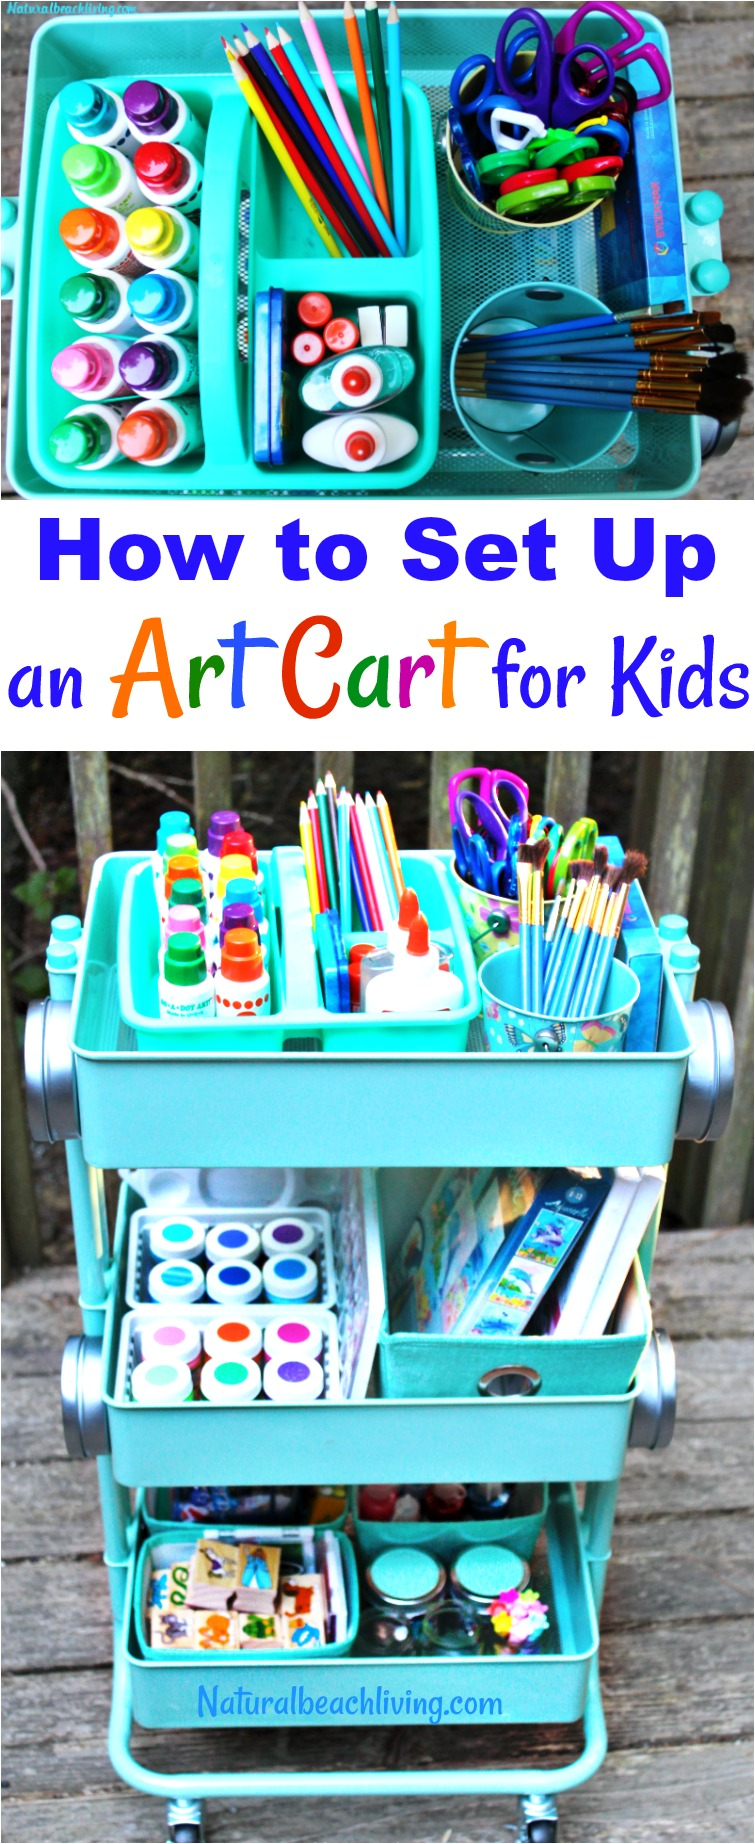 How to set up an art cart for kids, This February Drawing Challenge is perfect for kids and adults. Draw or Doodle through the month of February. This Challenge is full of February themes and topics like strawberries, football, Valentines, birds, love and more. Get ready to relax, find joy in each thing, and get your creativity flowing.